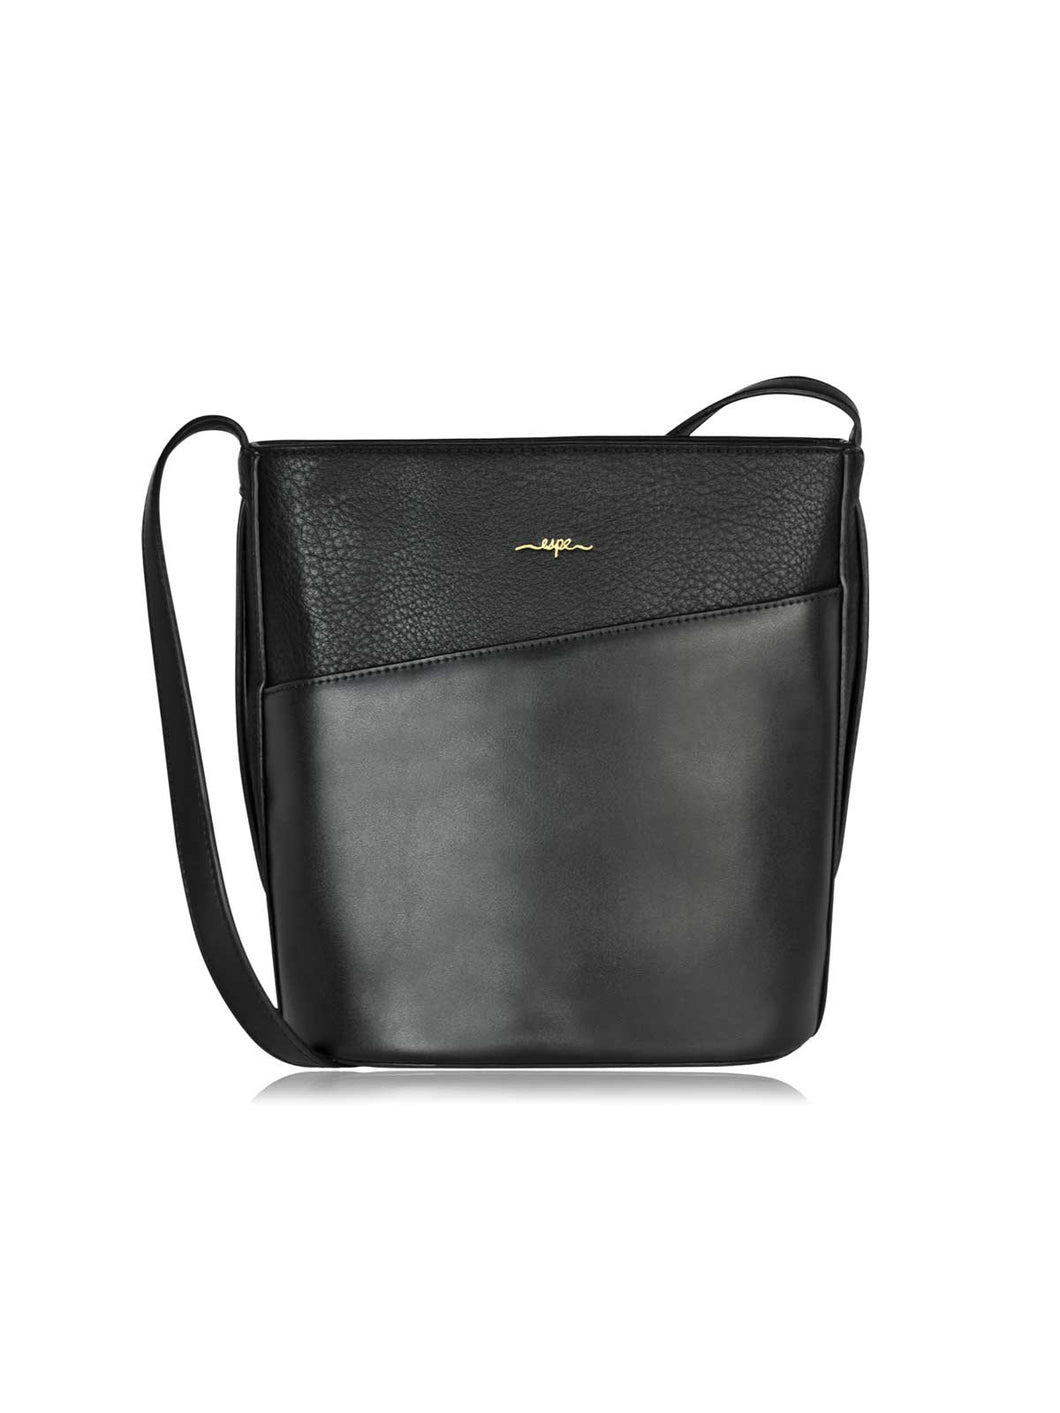 Emma Black Bag